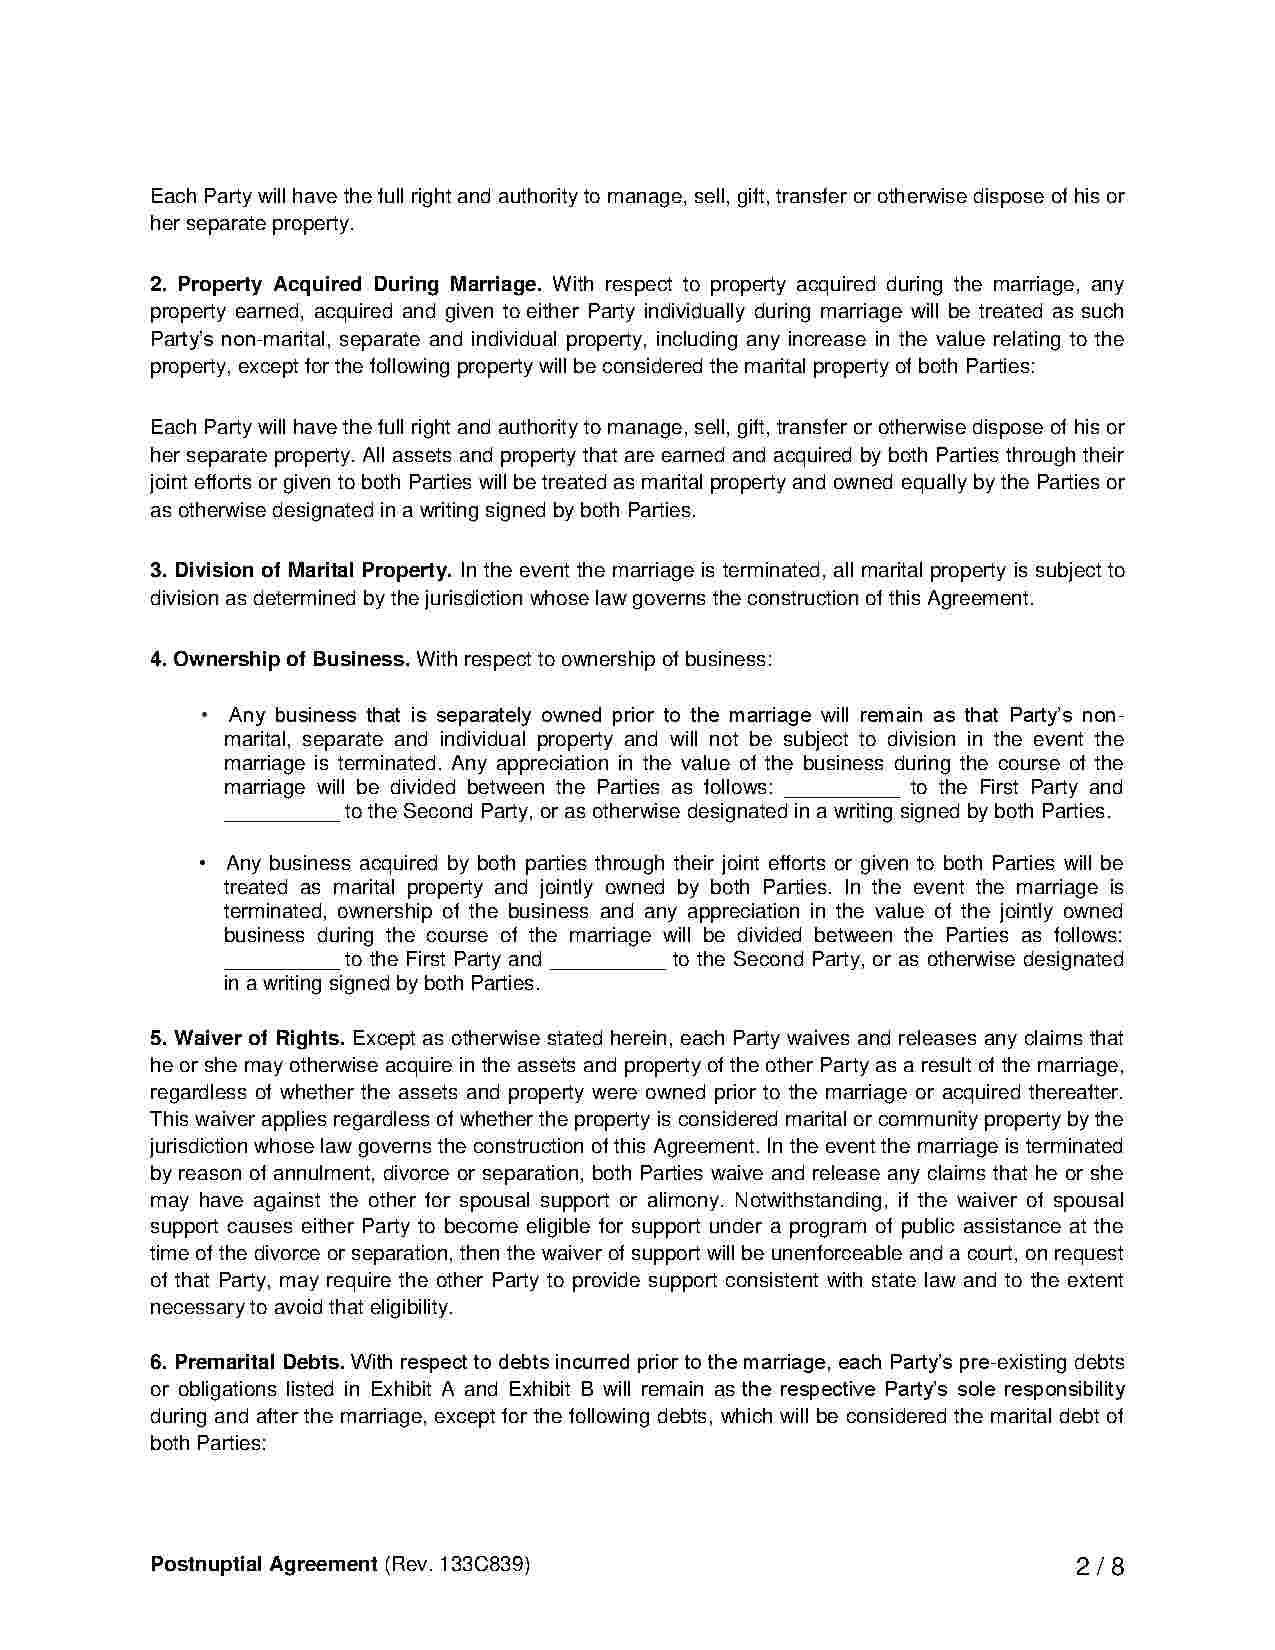 Free Prenuptial Agreement Template Australia Download Pet Custody Agreement Style 162 Template For Free At